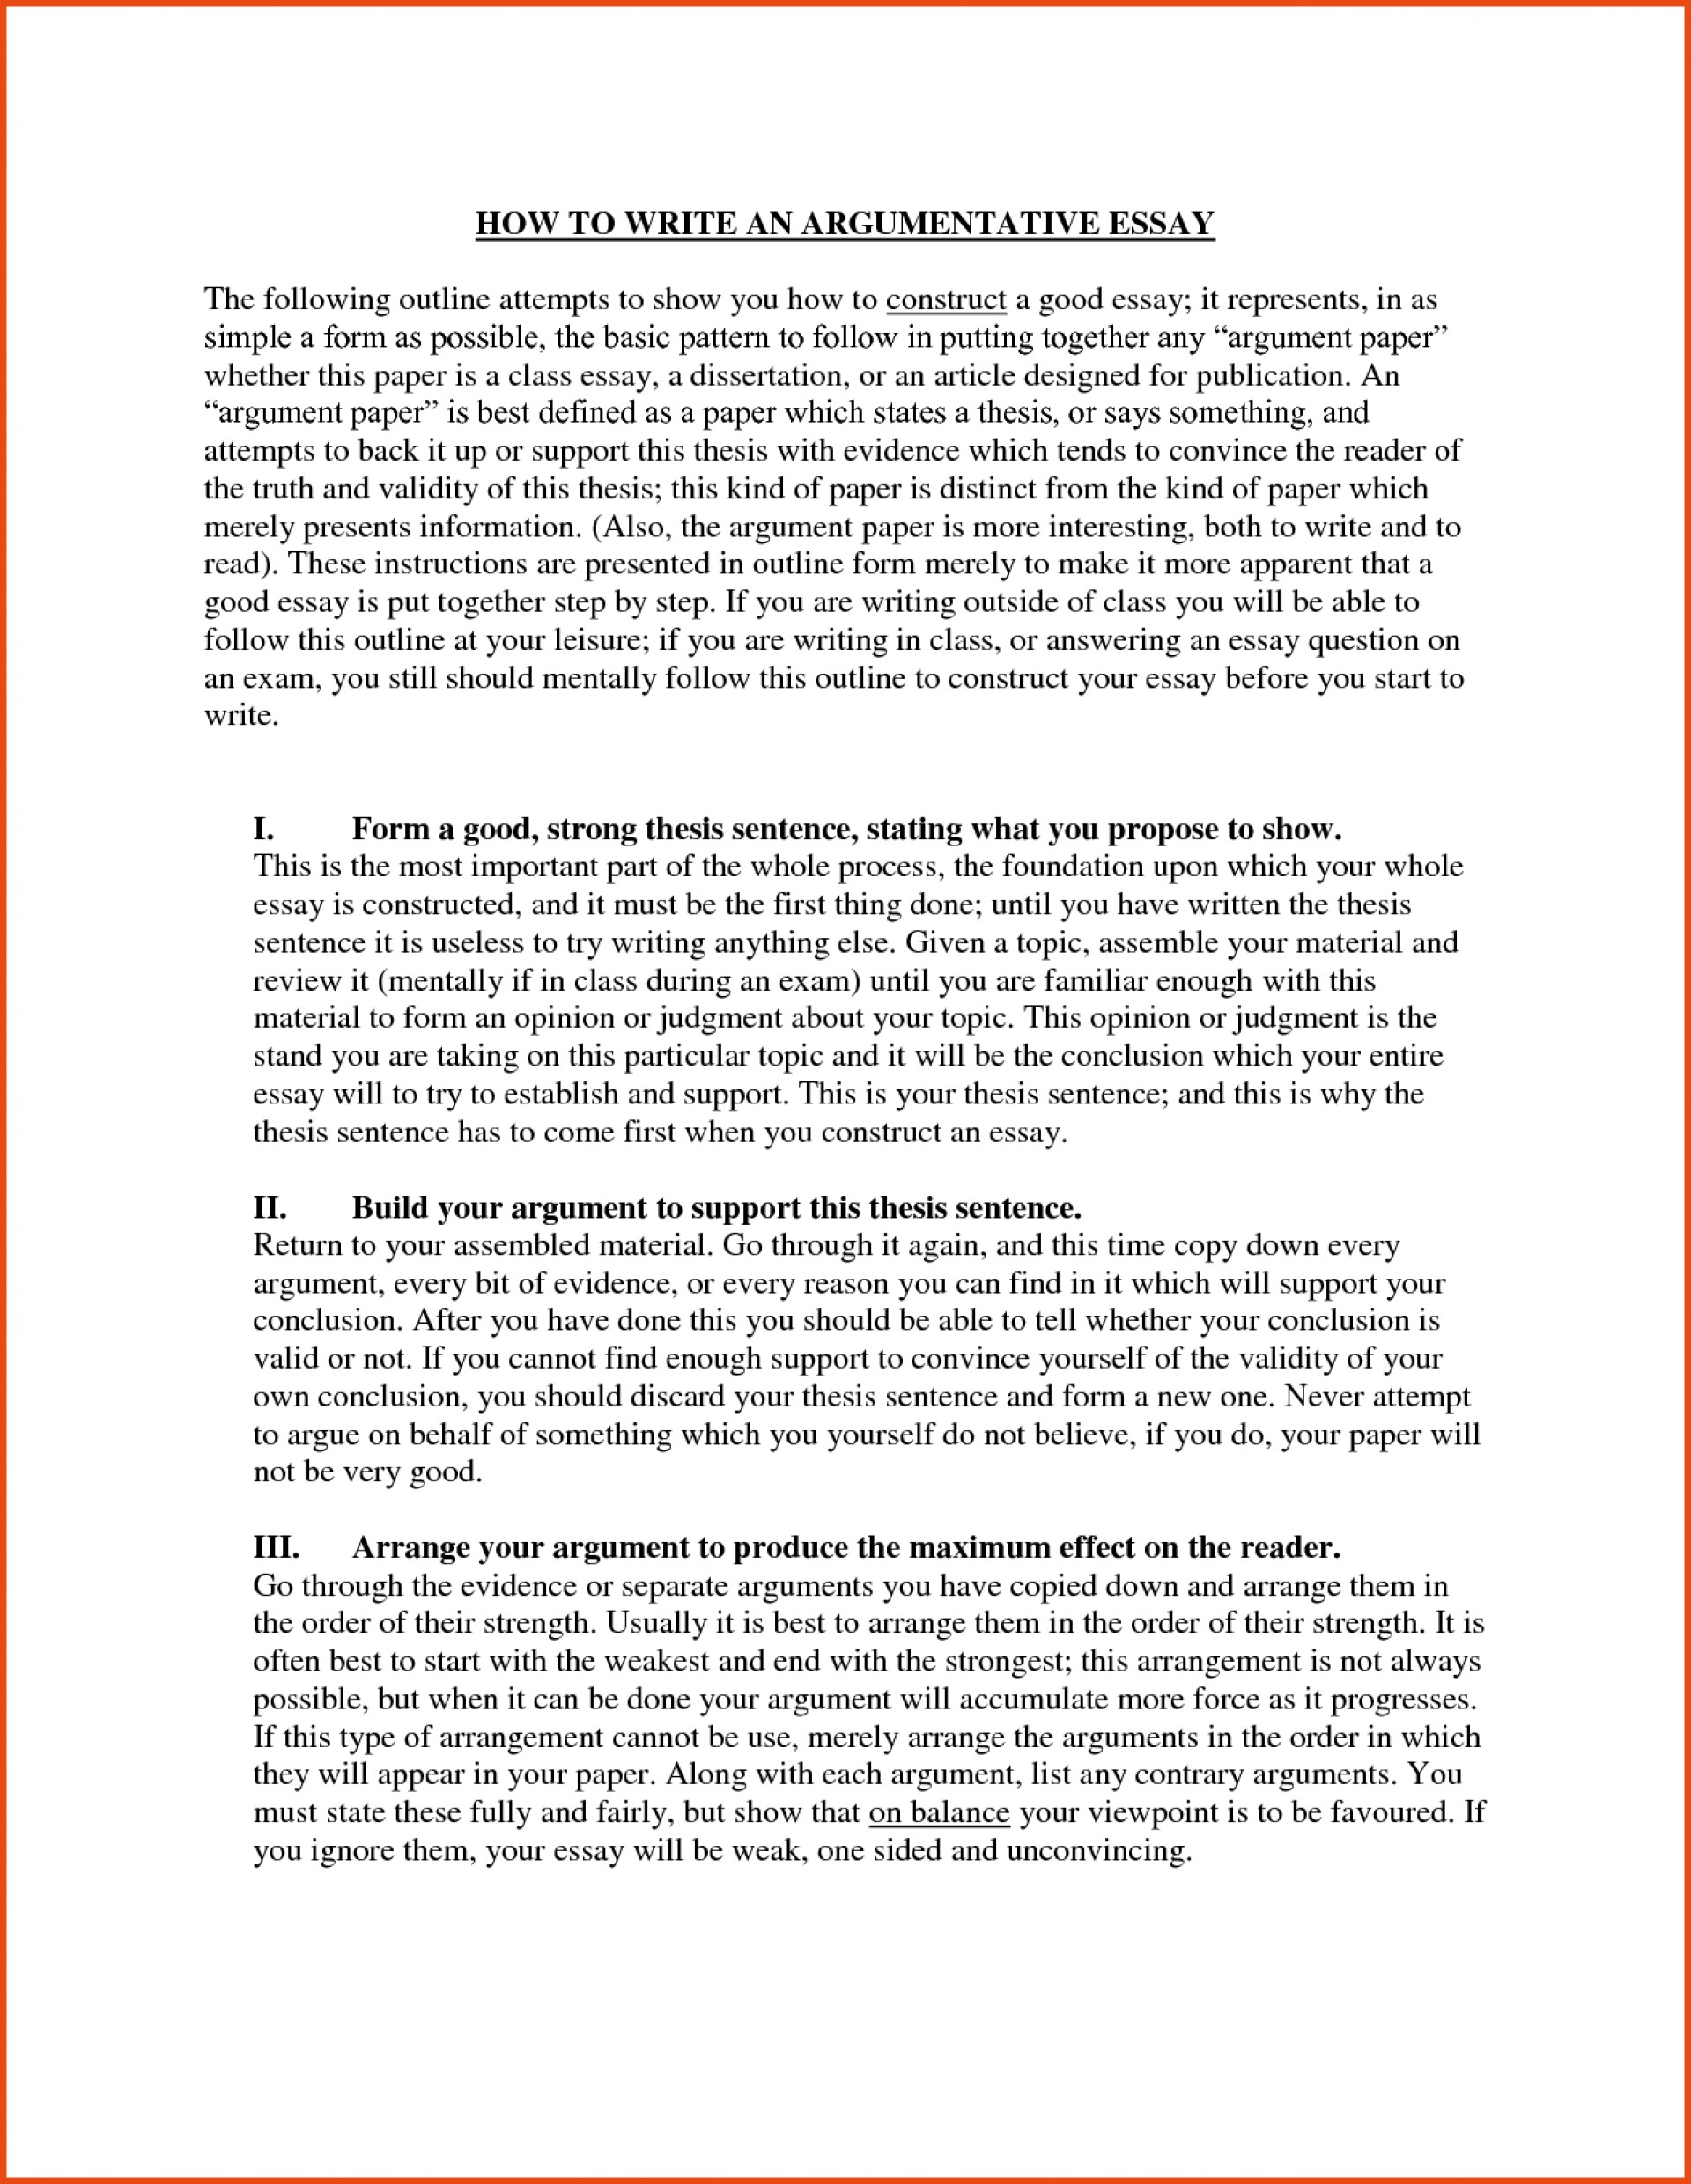 004 How To Start Good Essay Example Brilliant Ideas Of Ways An Aboutelf Dissertation Nice Photo Awesome A Paper For College Introduction Biography About Yourself 1920